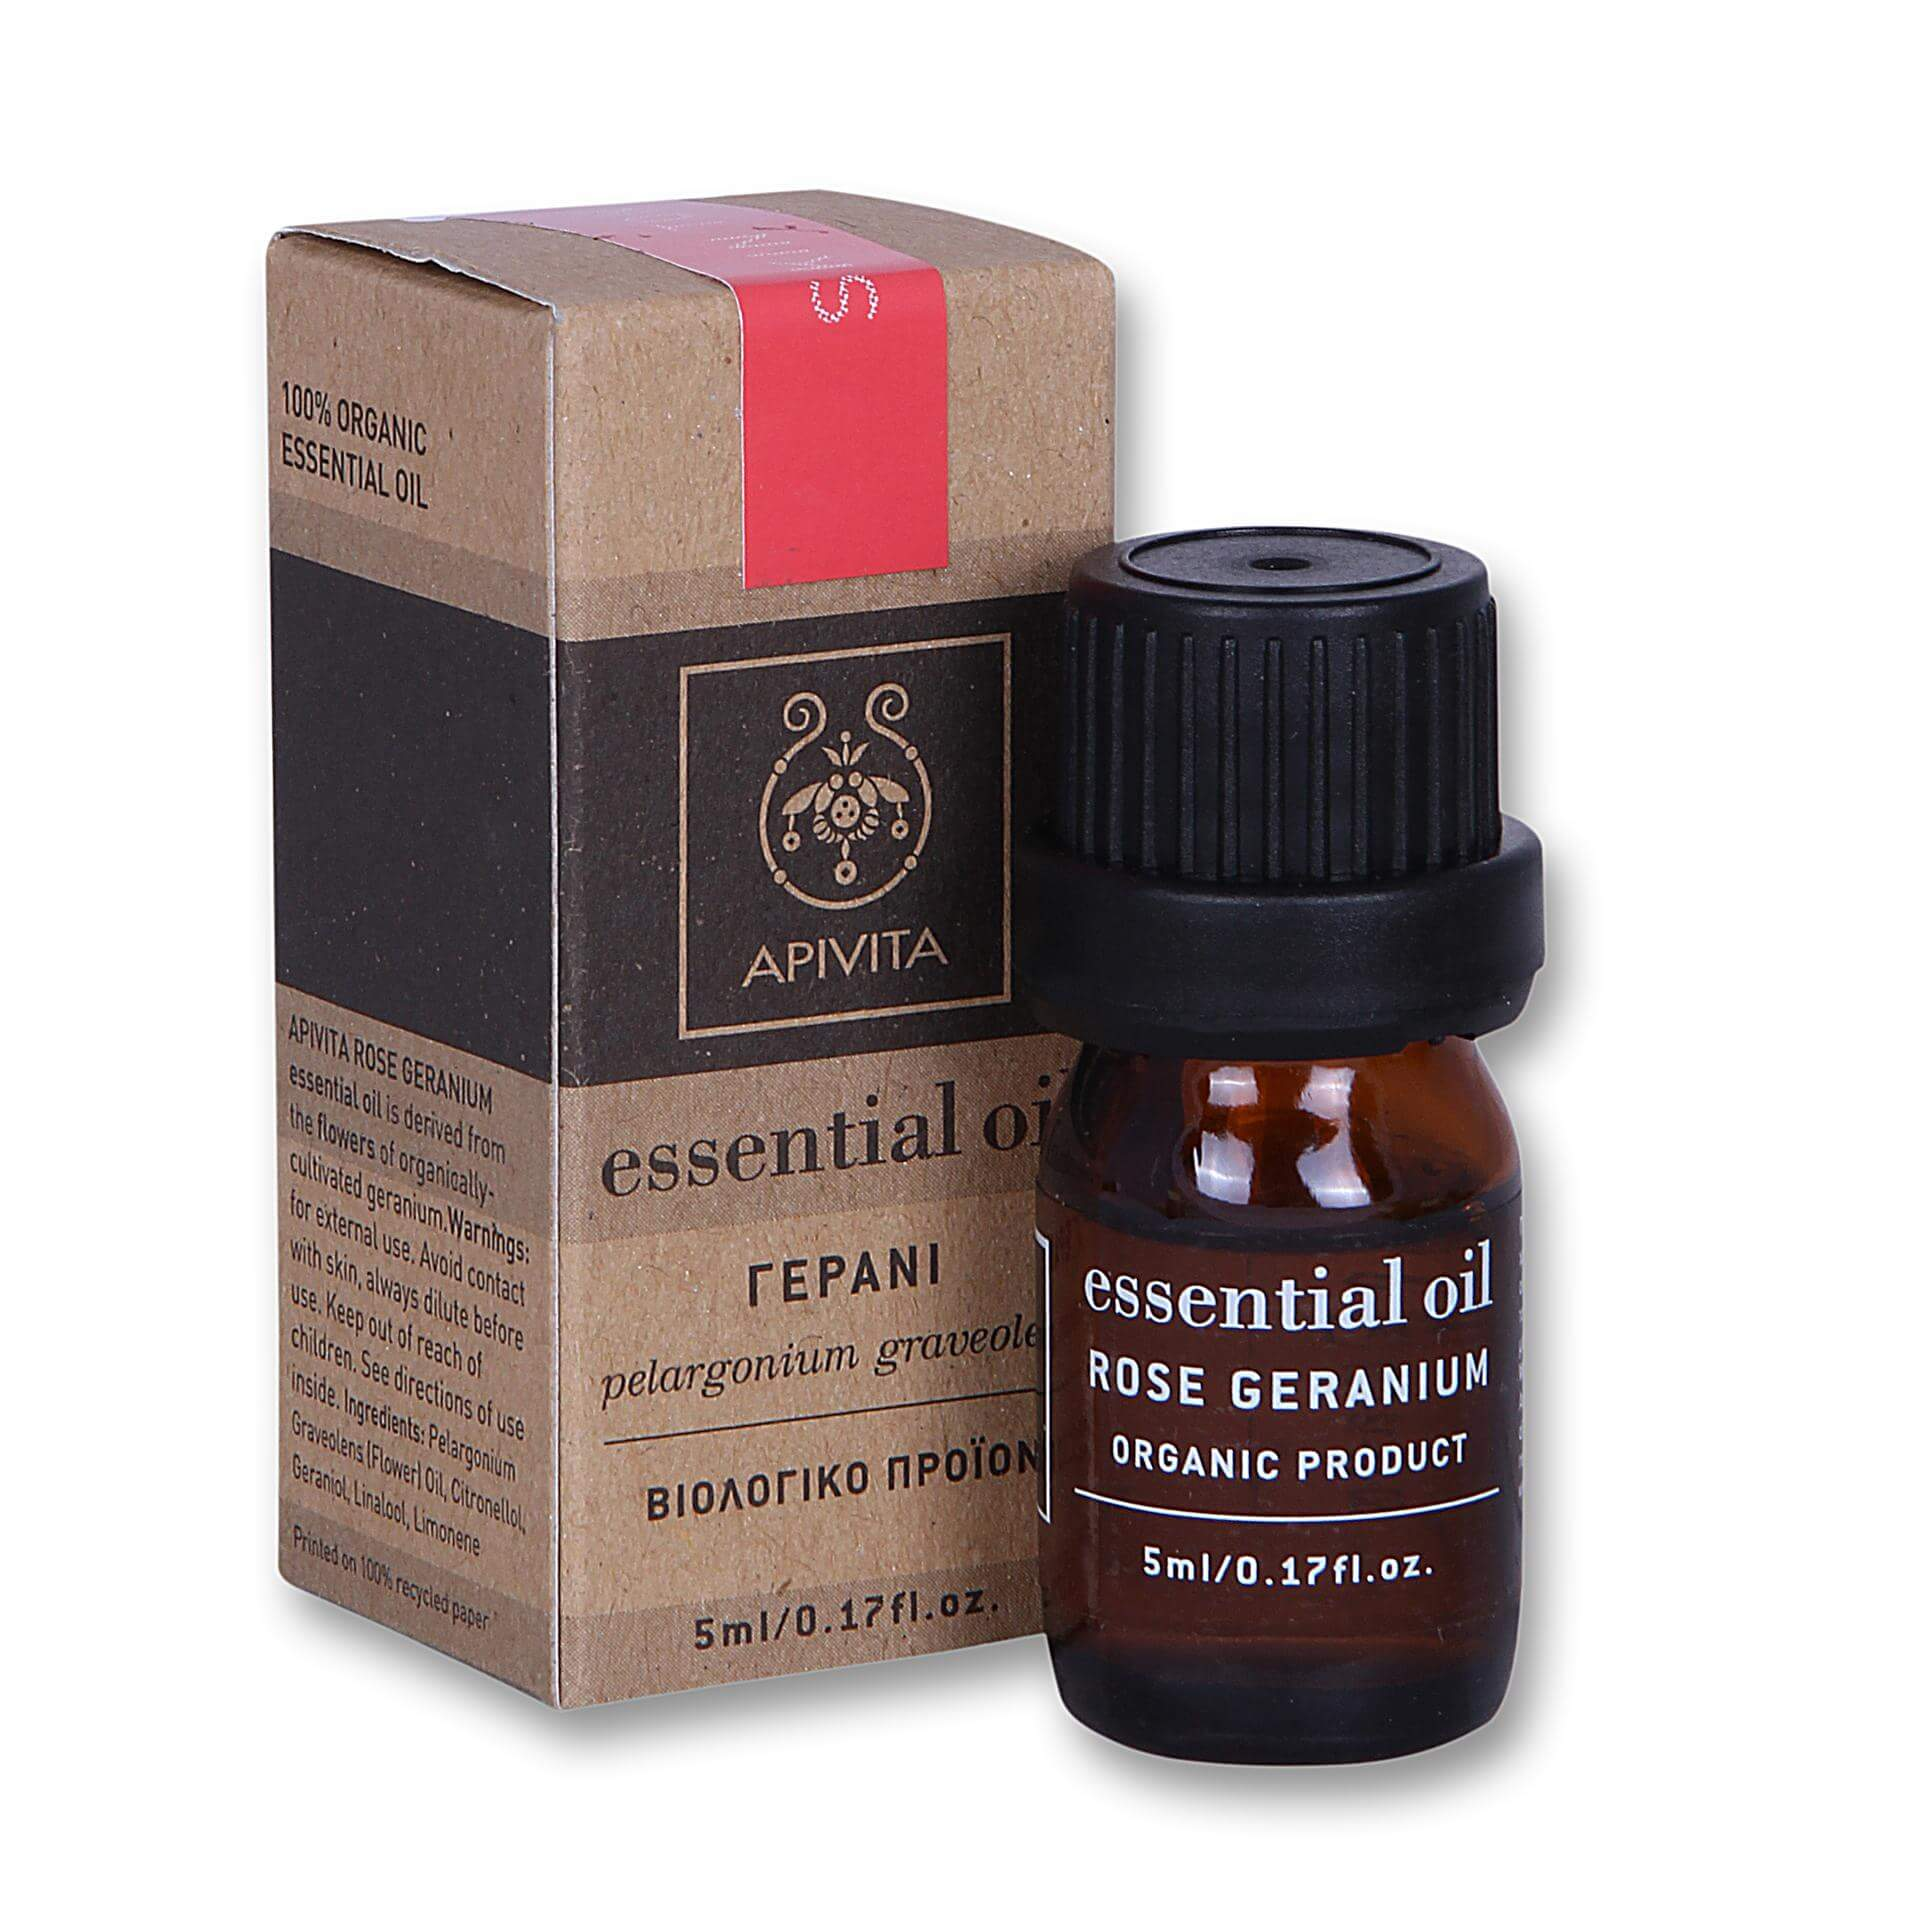 Apivita Essential Oil Γεράνι 5ml